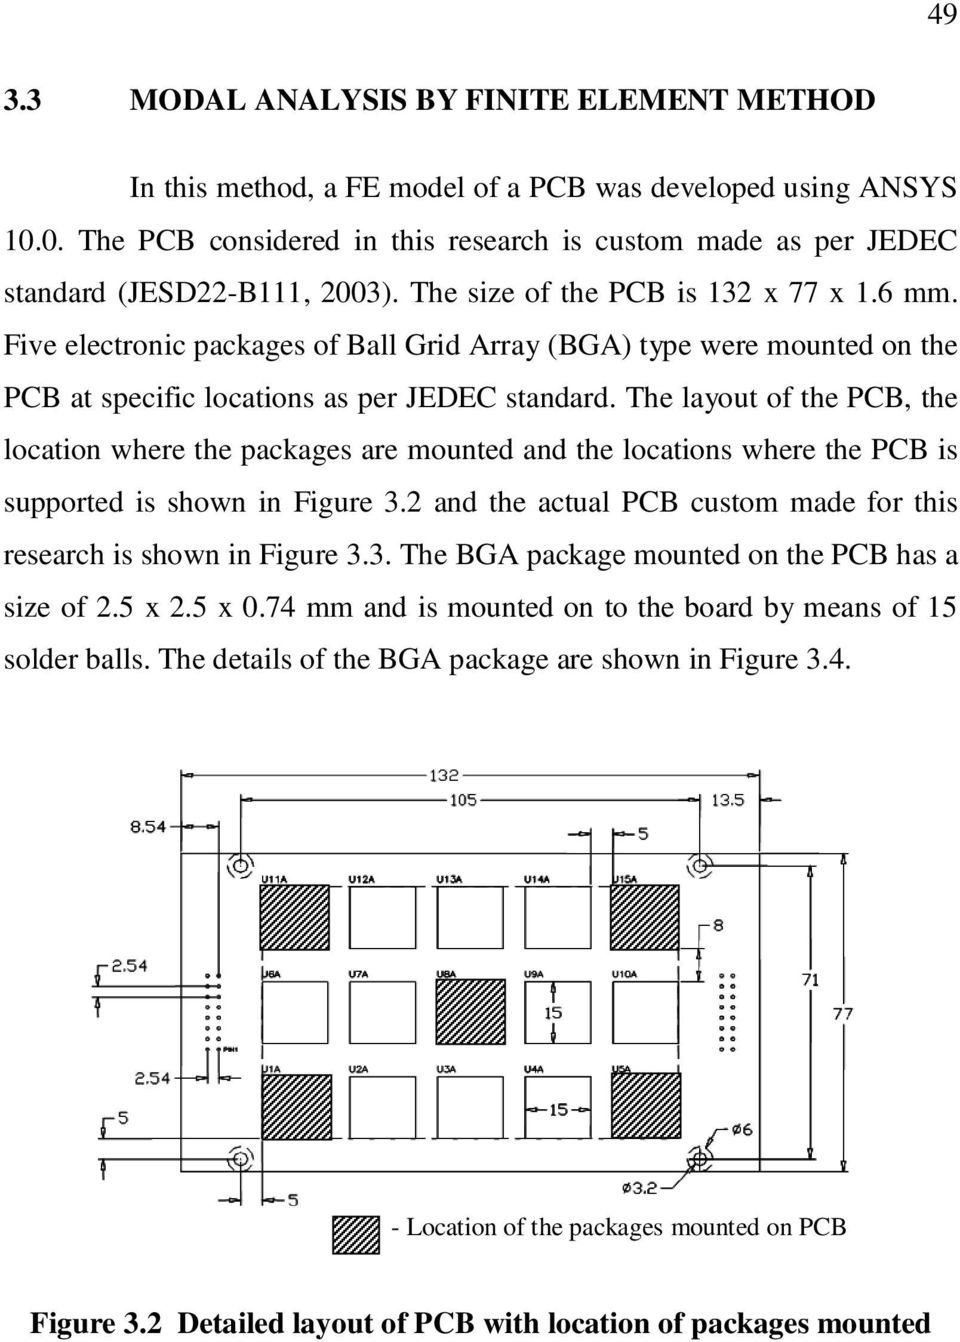 Five electronic packages of Ball Grid Array (BGA) type were mounted on the PCB at specific locations as per JEDEC standard.